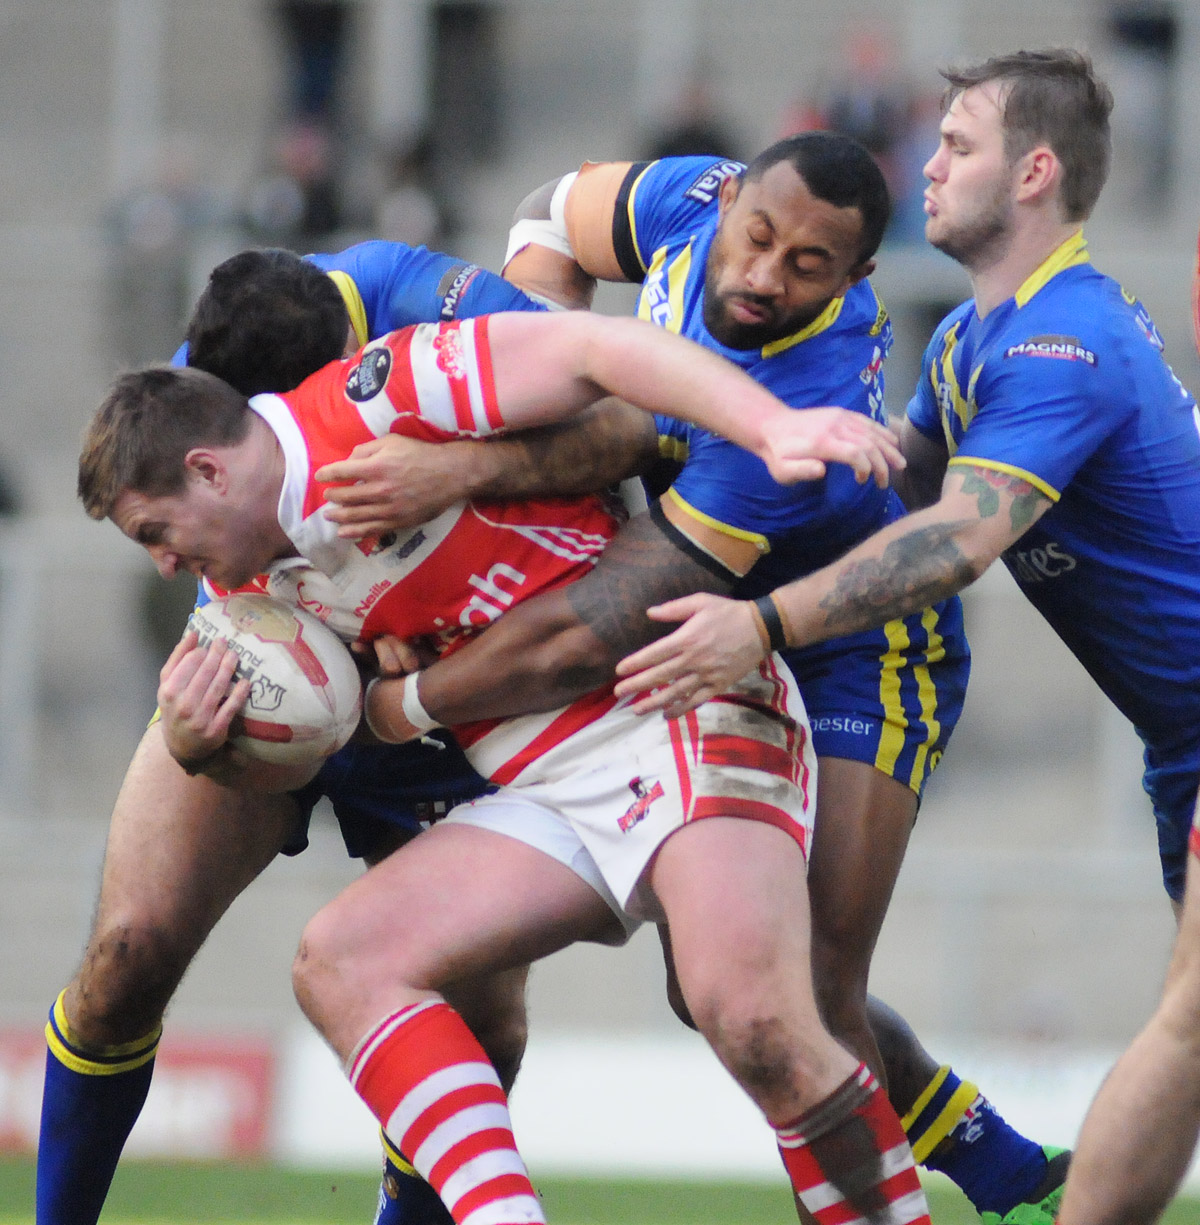 Centurions undone by Wolves in the second half